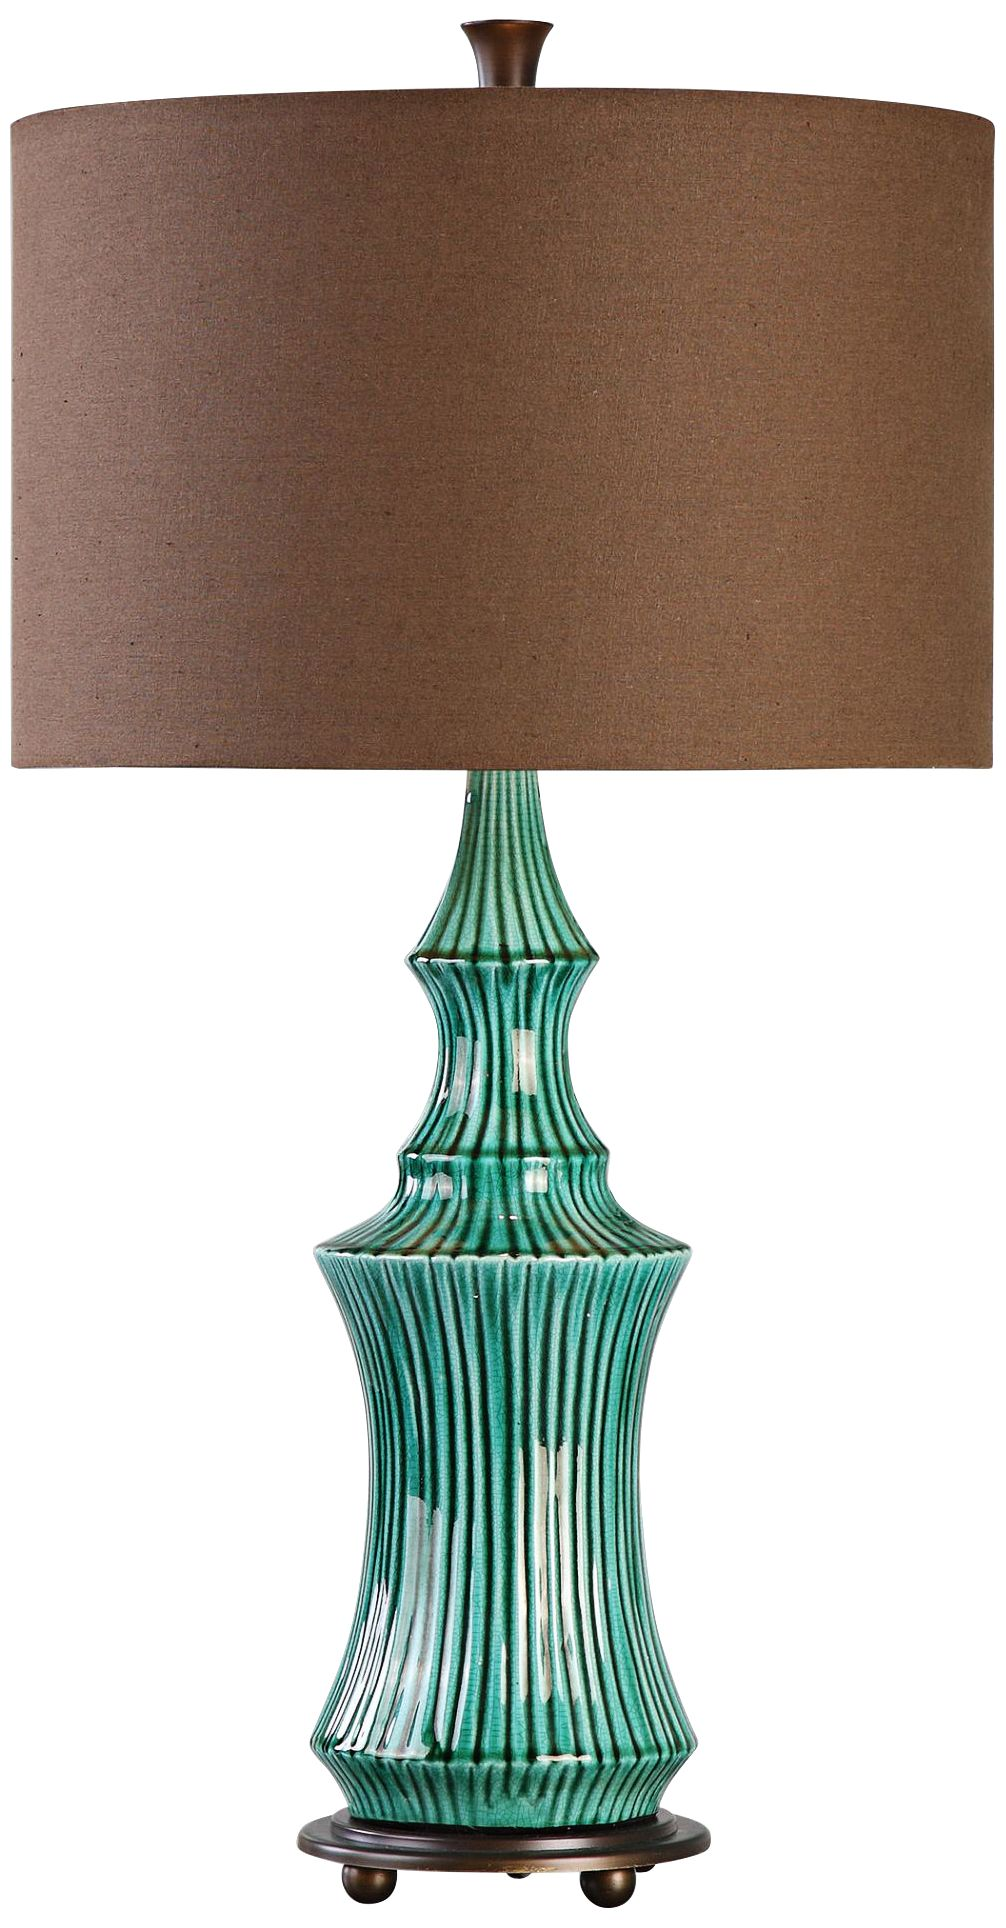 uttermost timavo teal ceramic table lamp - Uttermost Lamps